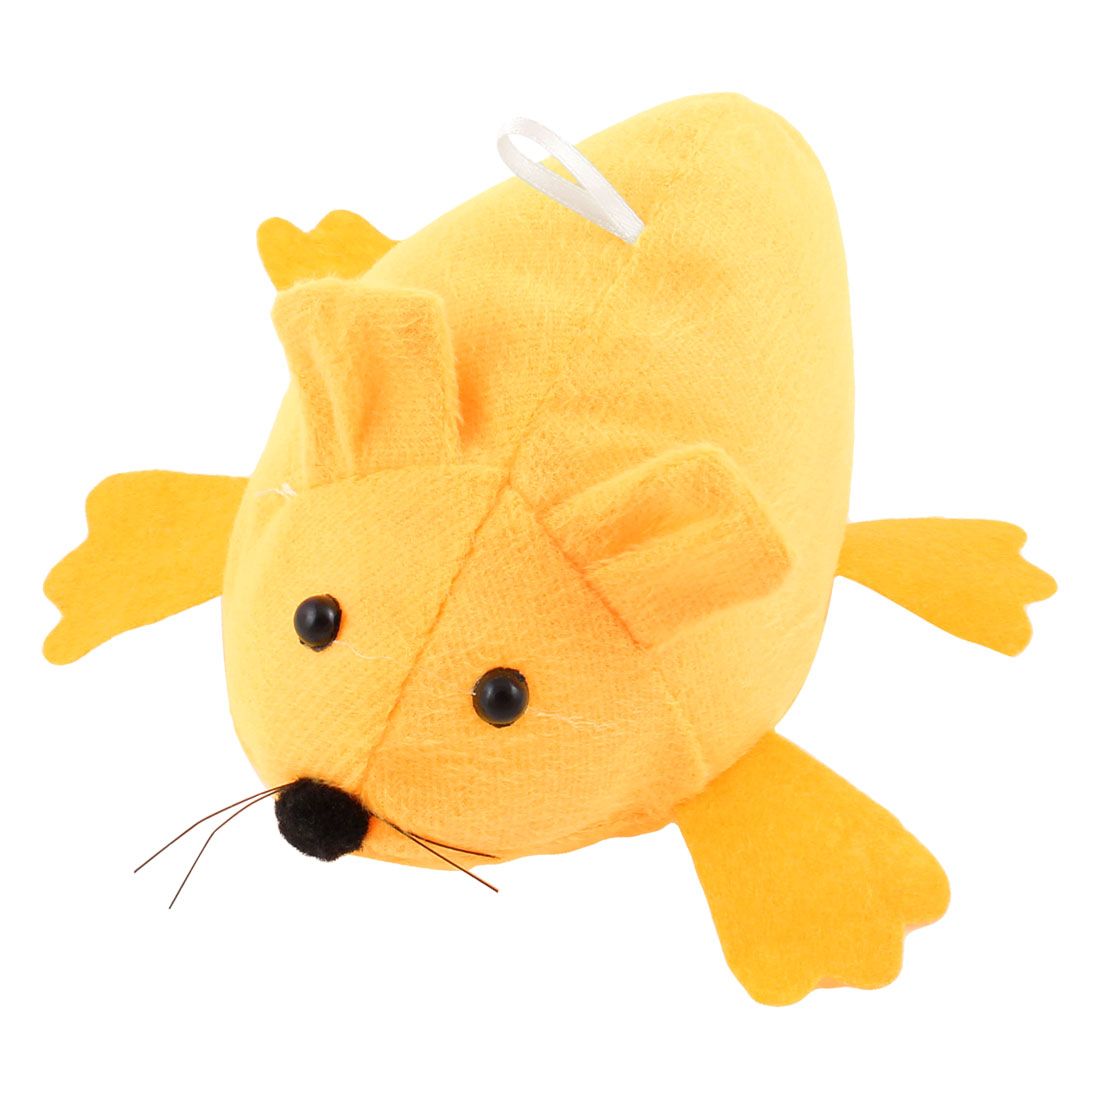 Stuffed Cutton Orange Fleece Mouse Doll Toy for Children